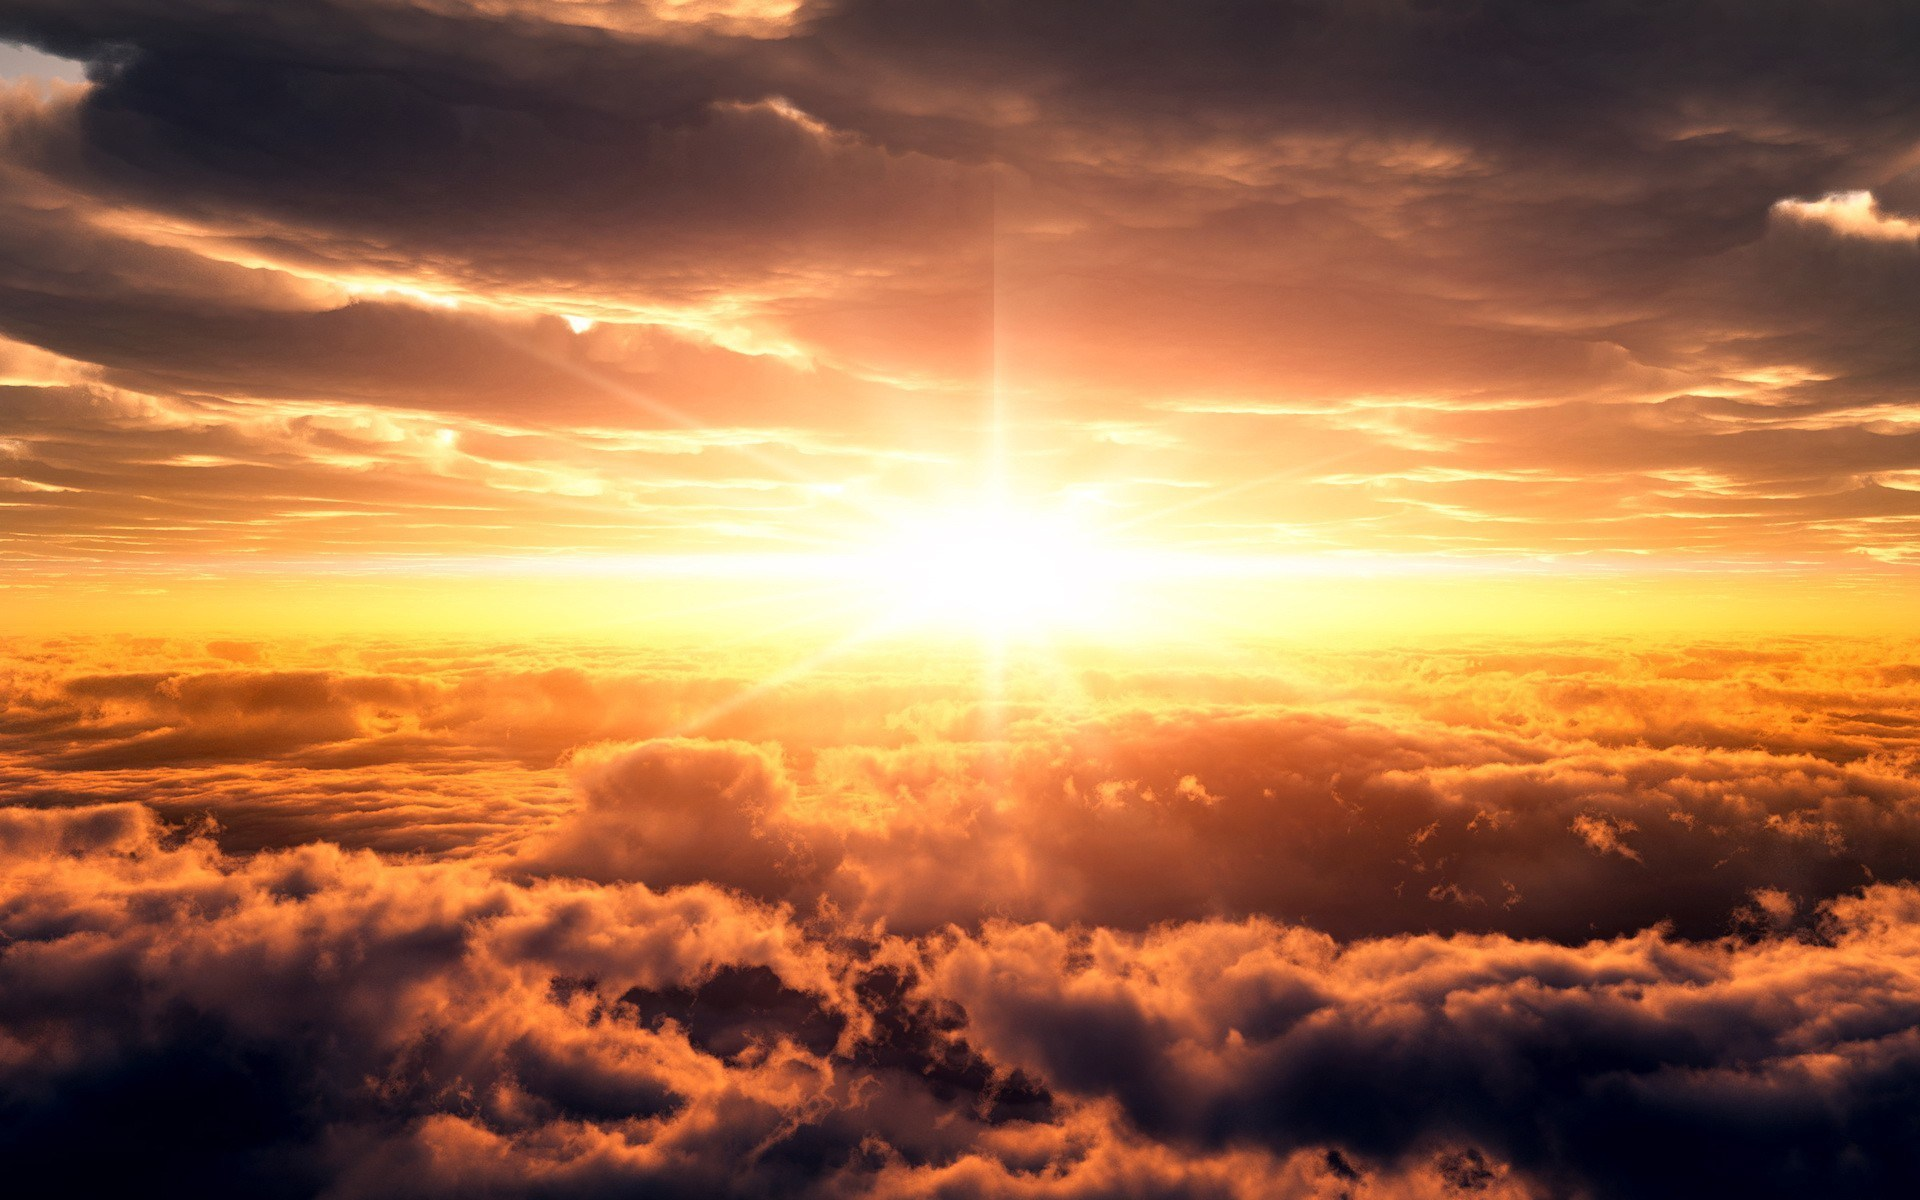 above-the-clouds-hd-wallpaper.jpg